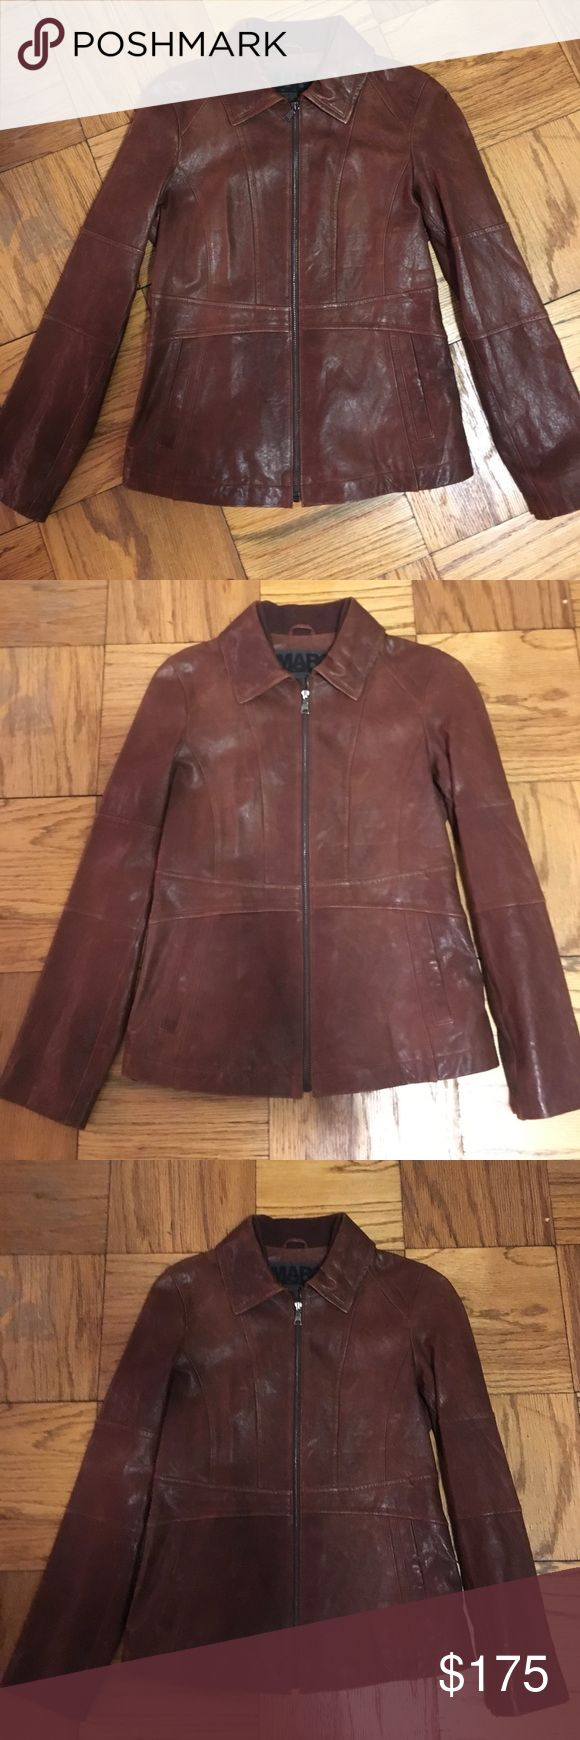 NWOT Andrew Marc Distressed Leather Jacket Never worn Andrew Marc distressed leather jacket. Wear alone or layer year-round. 2 pockets with inner lining.  Oxblood color. Uneven texture and coloring throughout the jacket is part of the distressed look. Andrew Marc Jackets & Coats